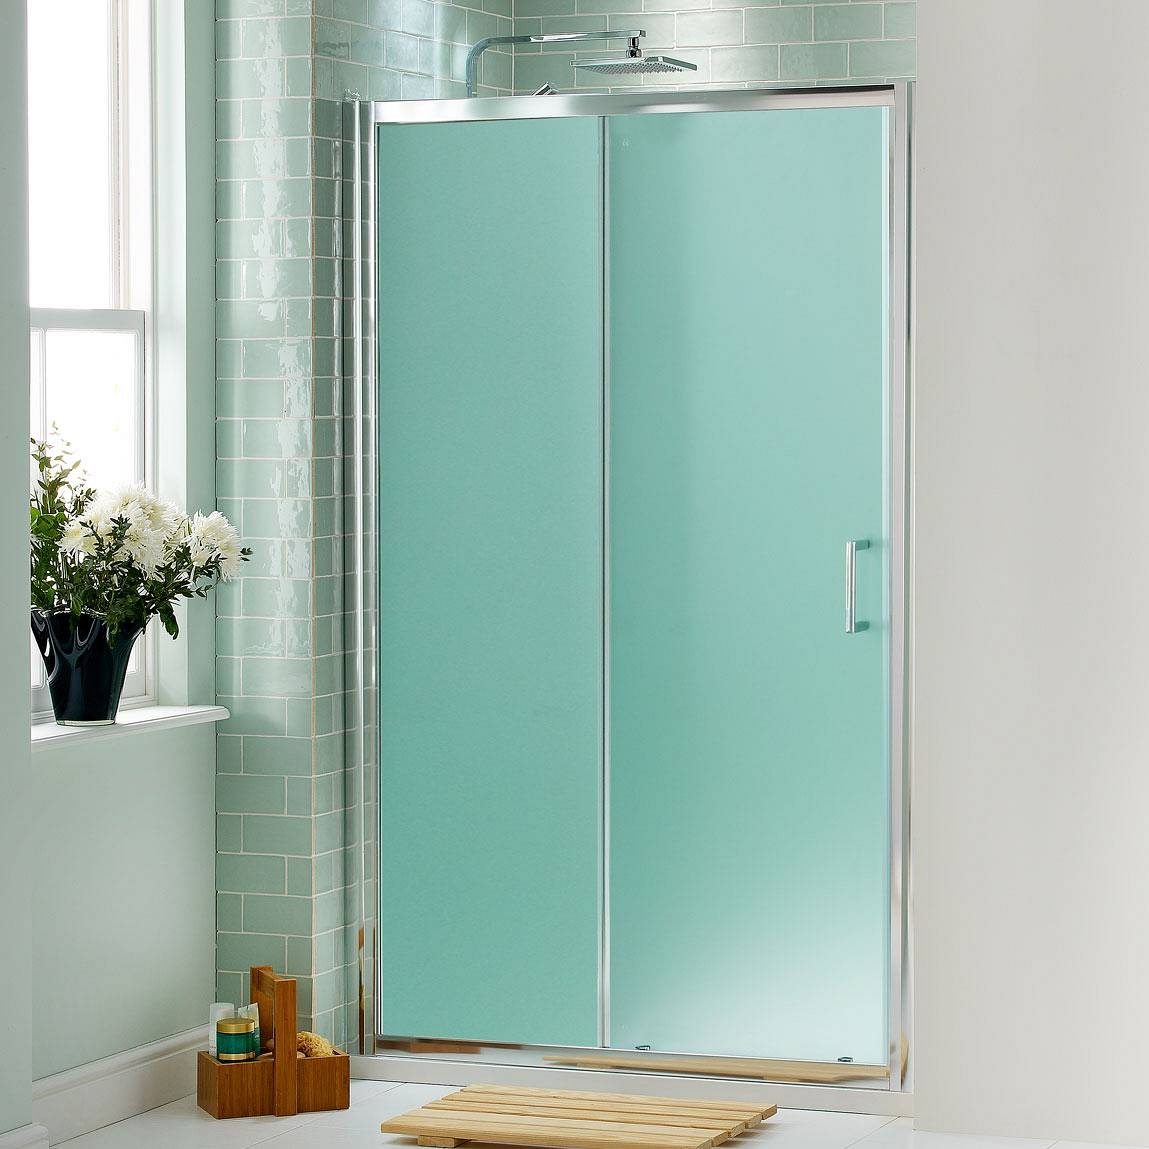 Sliding Glass Doors For Bathroomincredible frosted glass doors inspirational home decor and glass